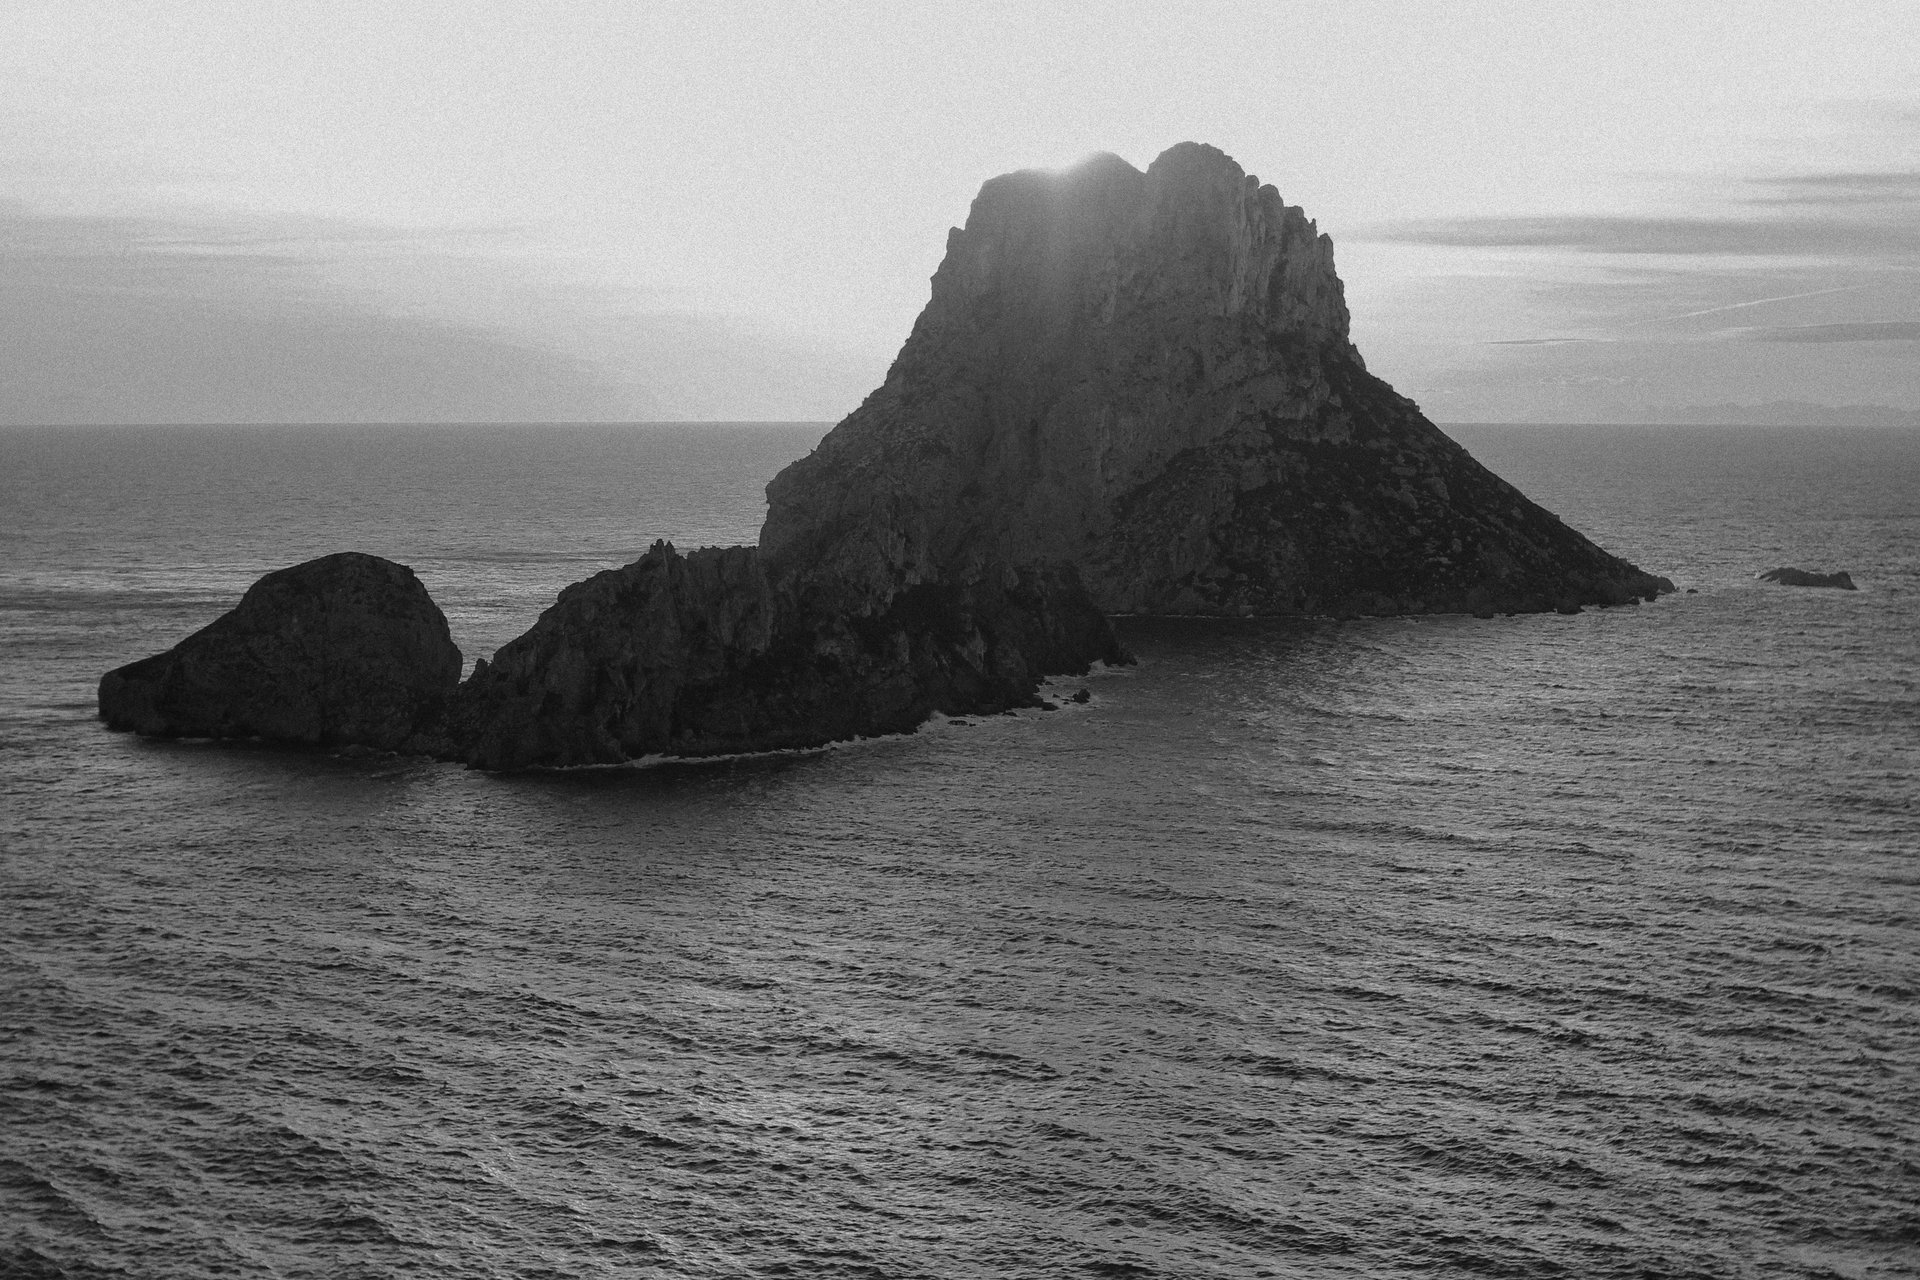 sir-explore-ibiza-atlantis-hike(1).jpg